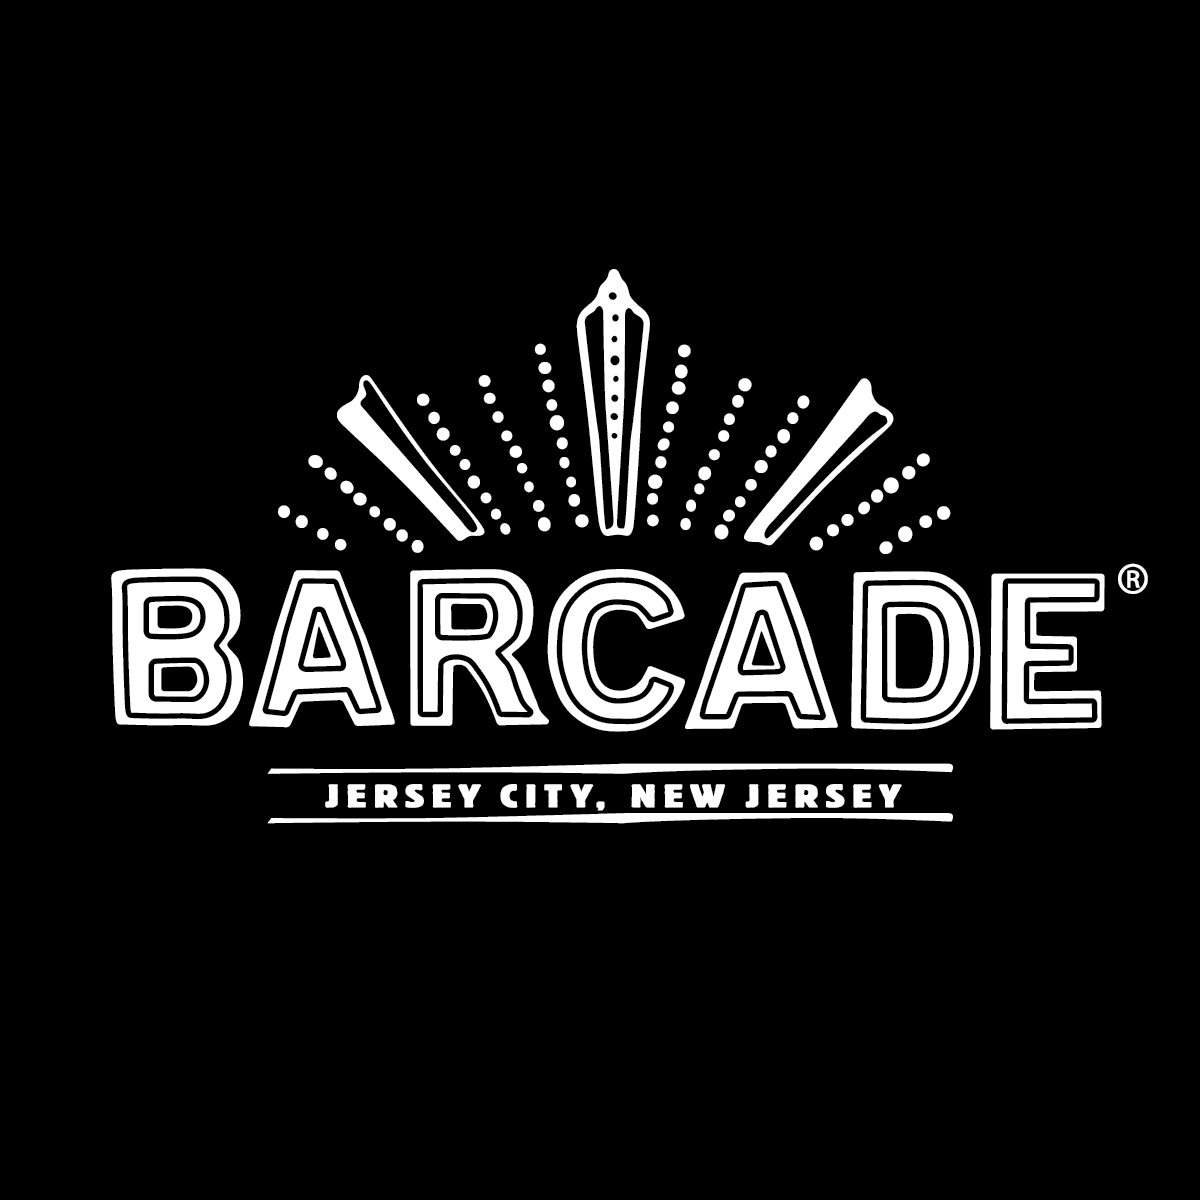 Faq Barcade Jersey City New Jersey